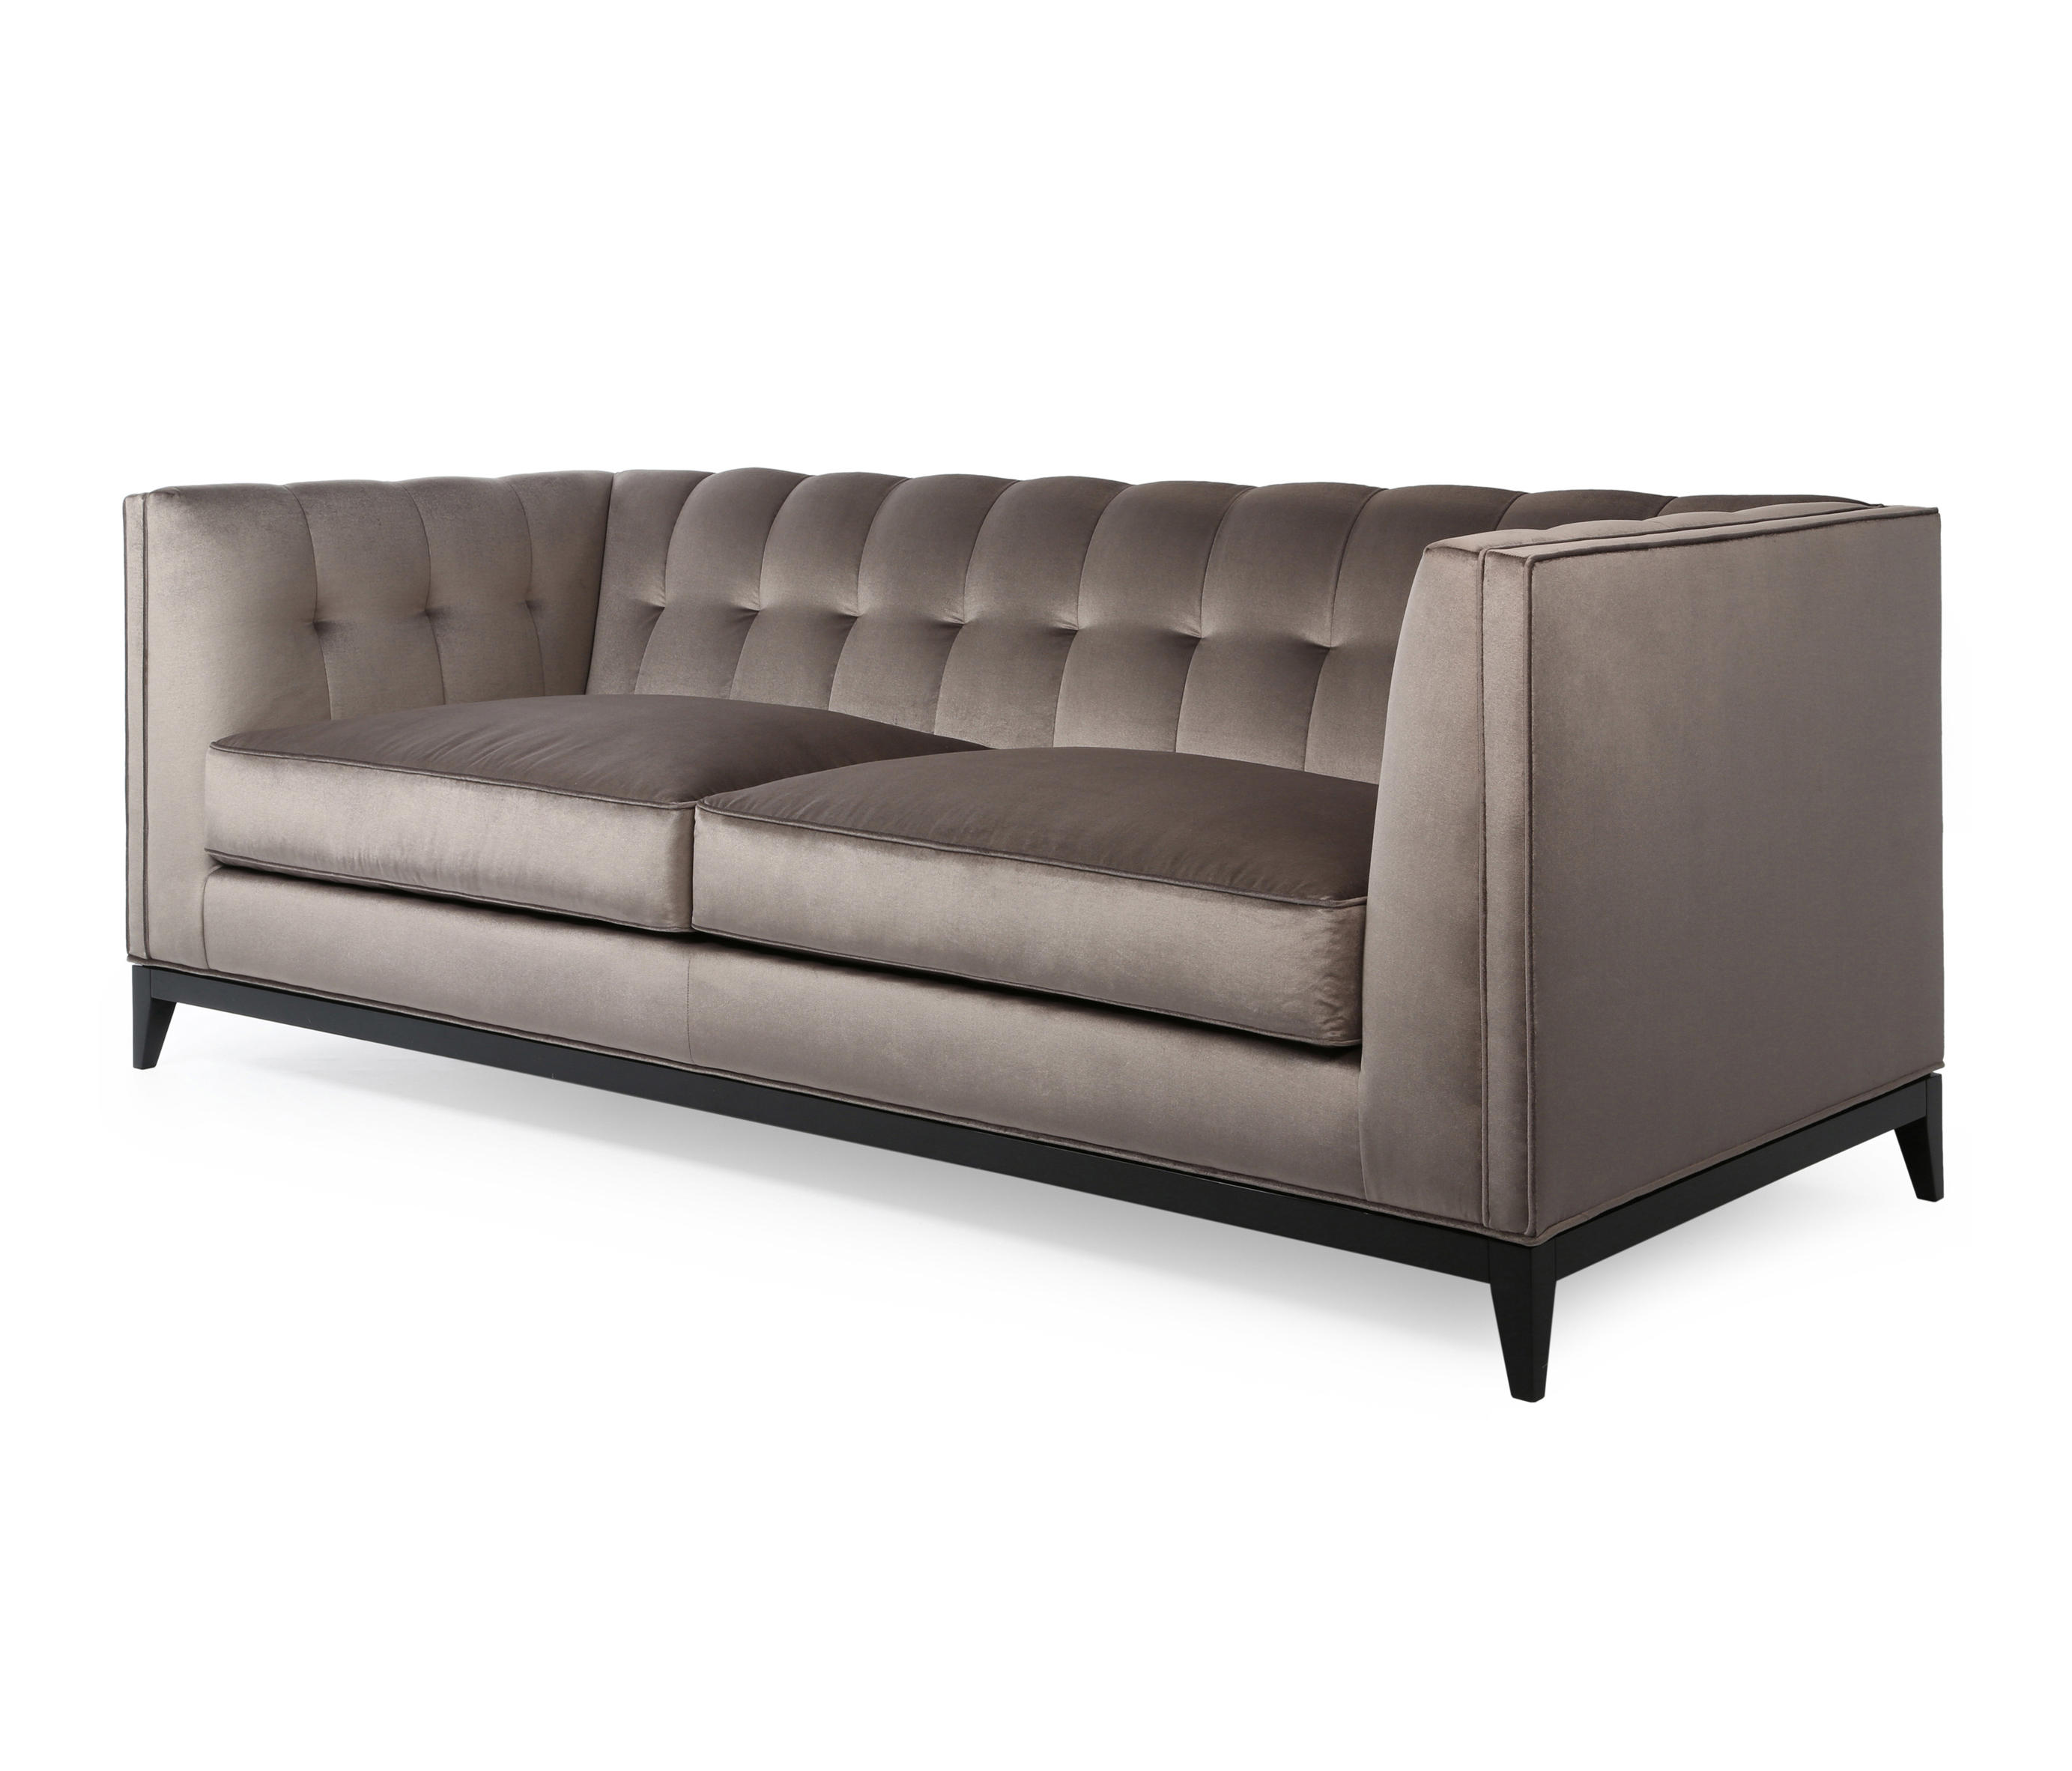 ALEXANDER SOFA Sofas from The Sofa & Chair pany Ltd